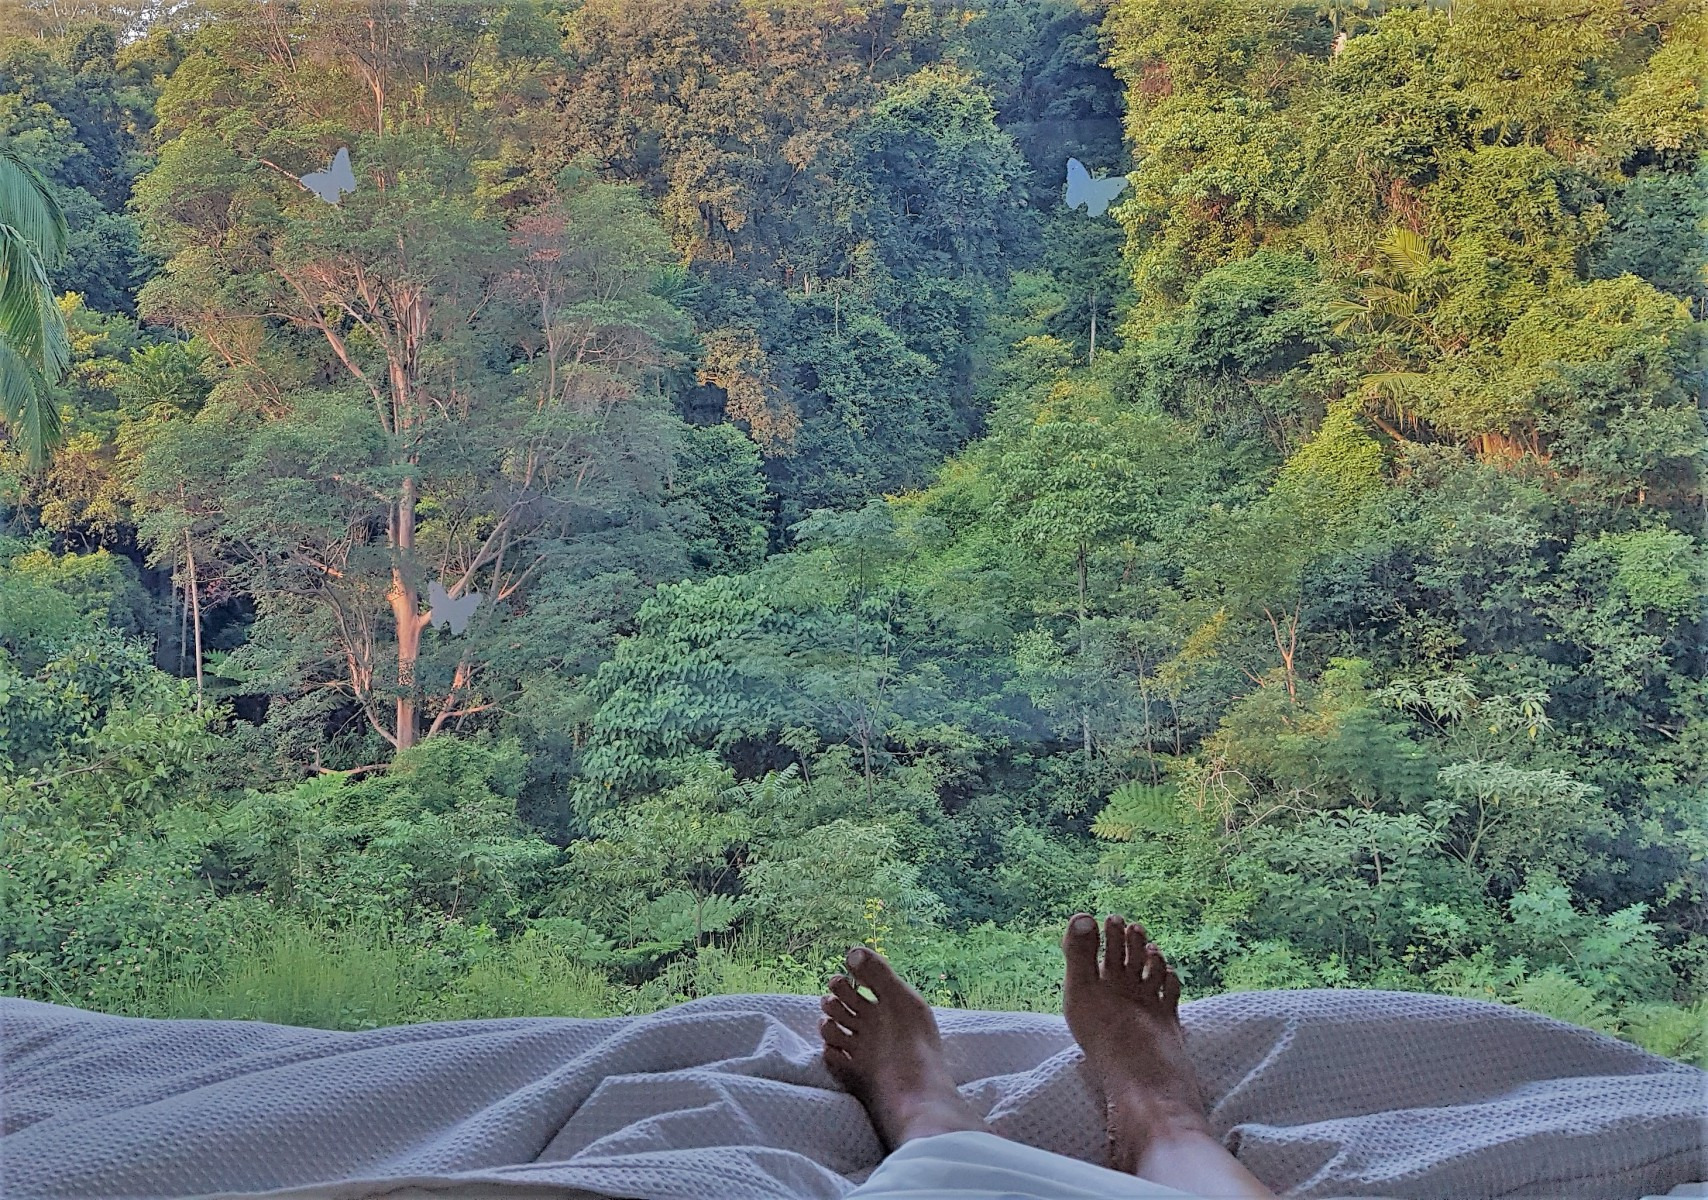 Crystal-Creek-Rainforest-Retreat-Lamington-Lodge-Bedroom-View-from-Bed.-Image-Kate-Webster